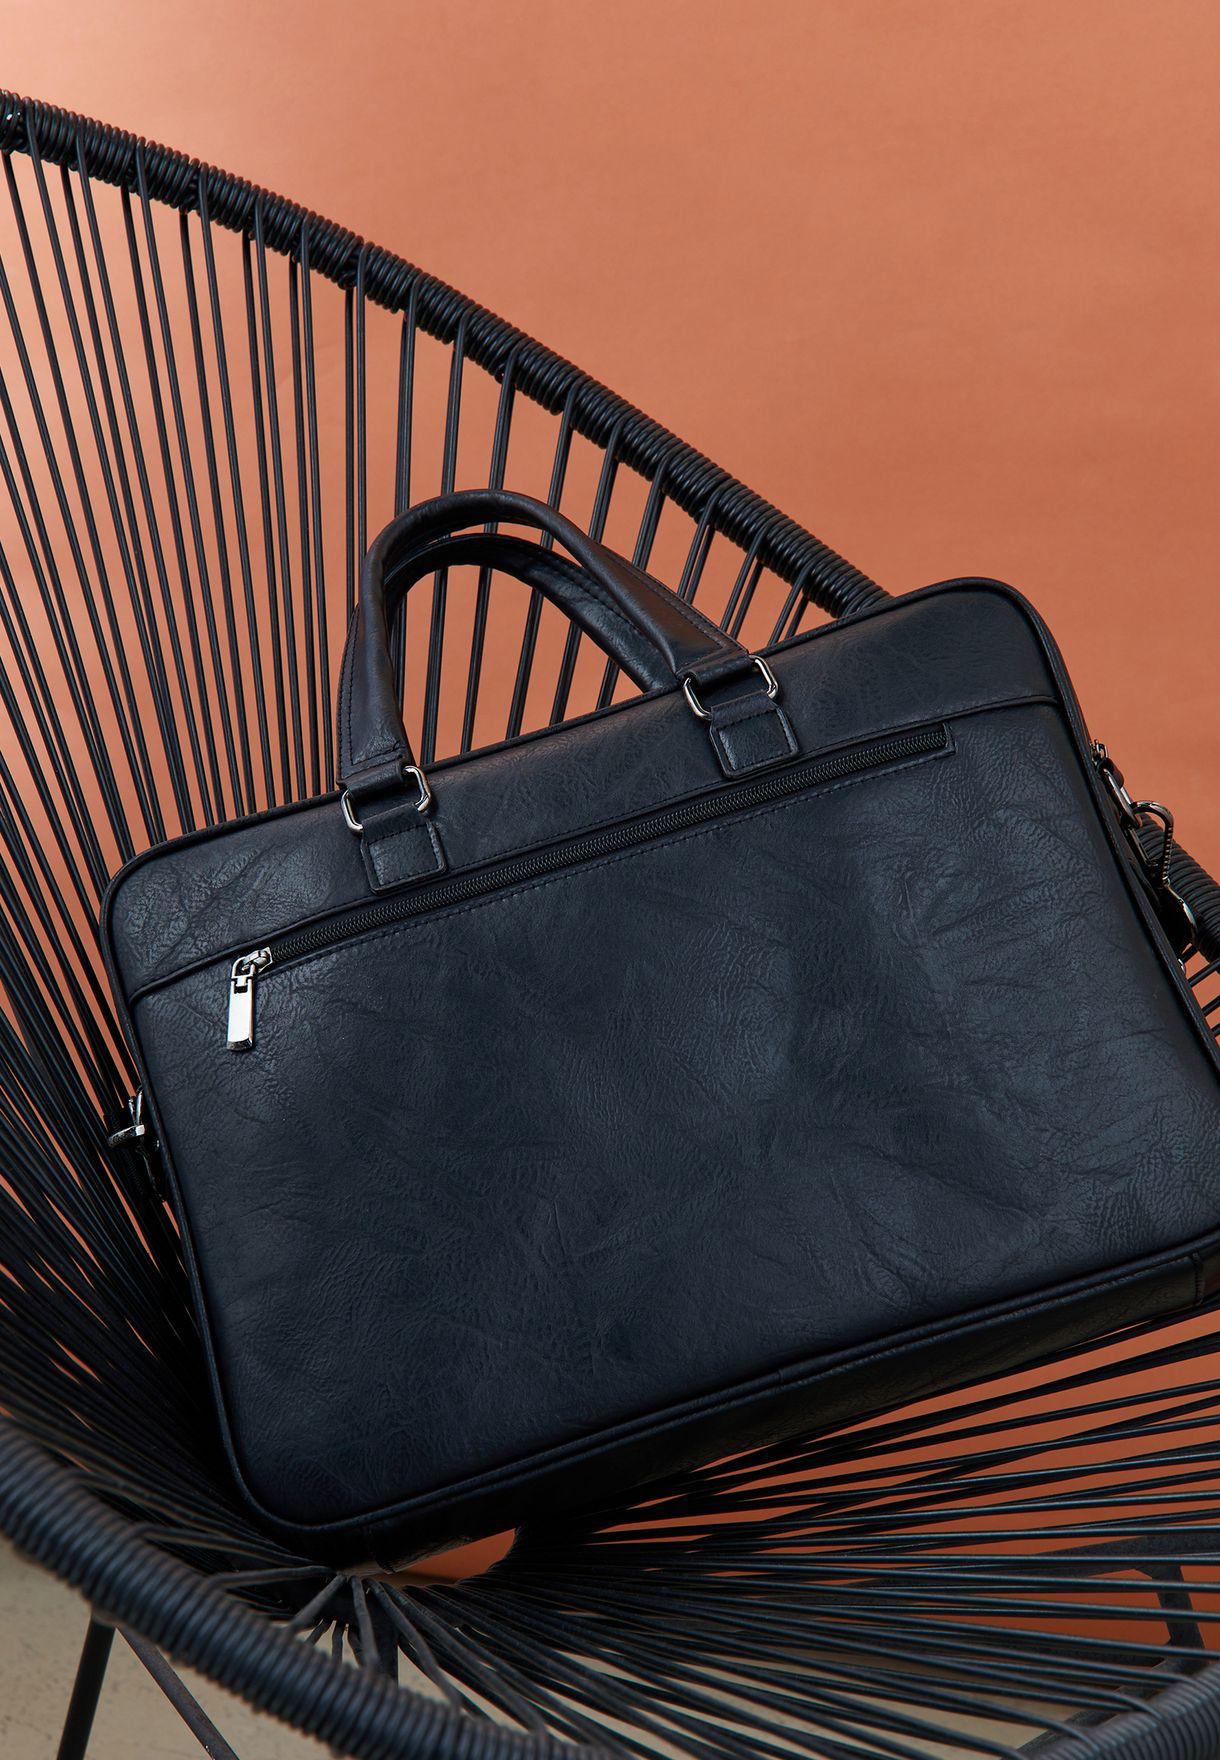 Faux Leather Laptop Bag With Compartments